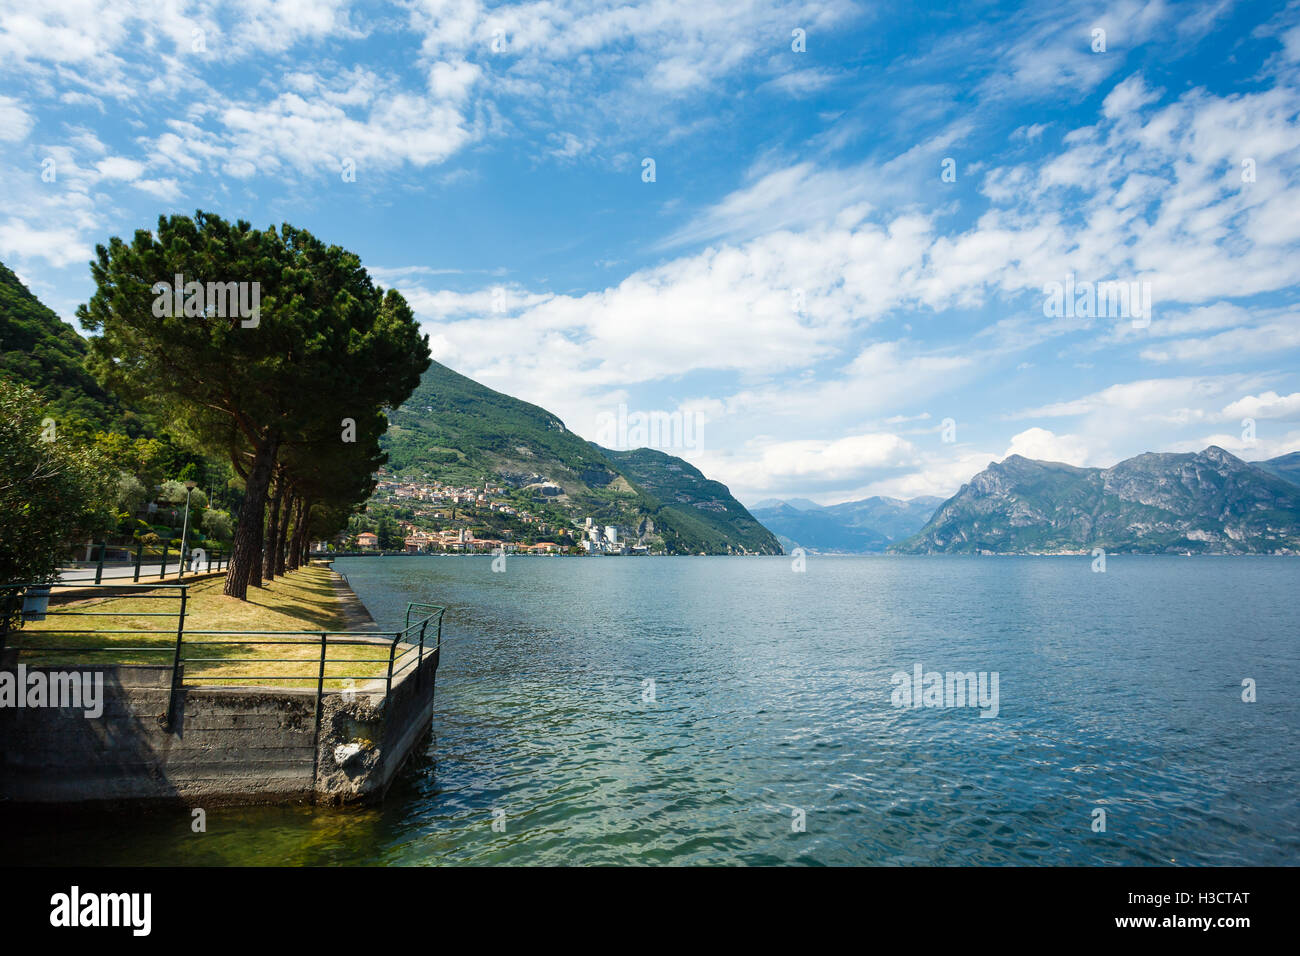 Landscape of Lake Iseo in North Italy - Stock Image